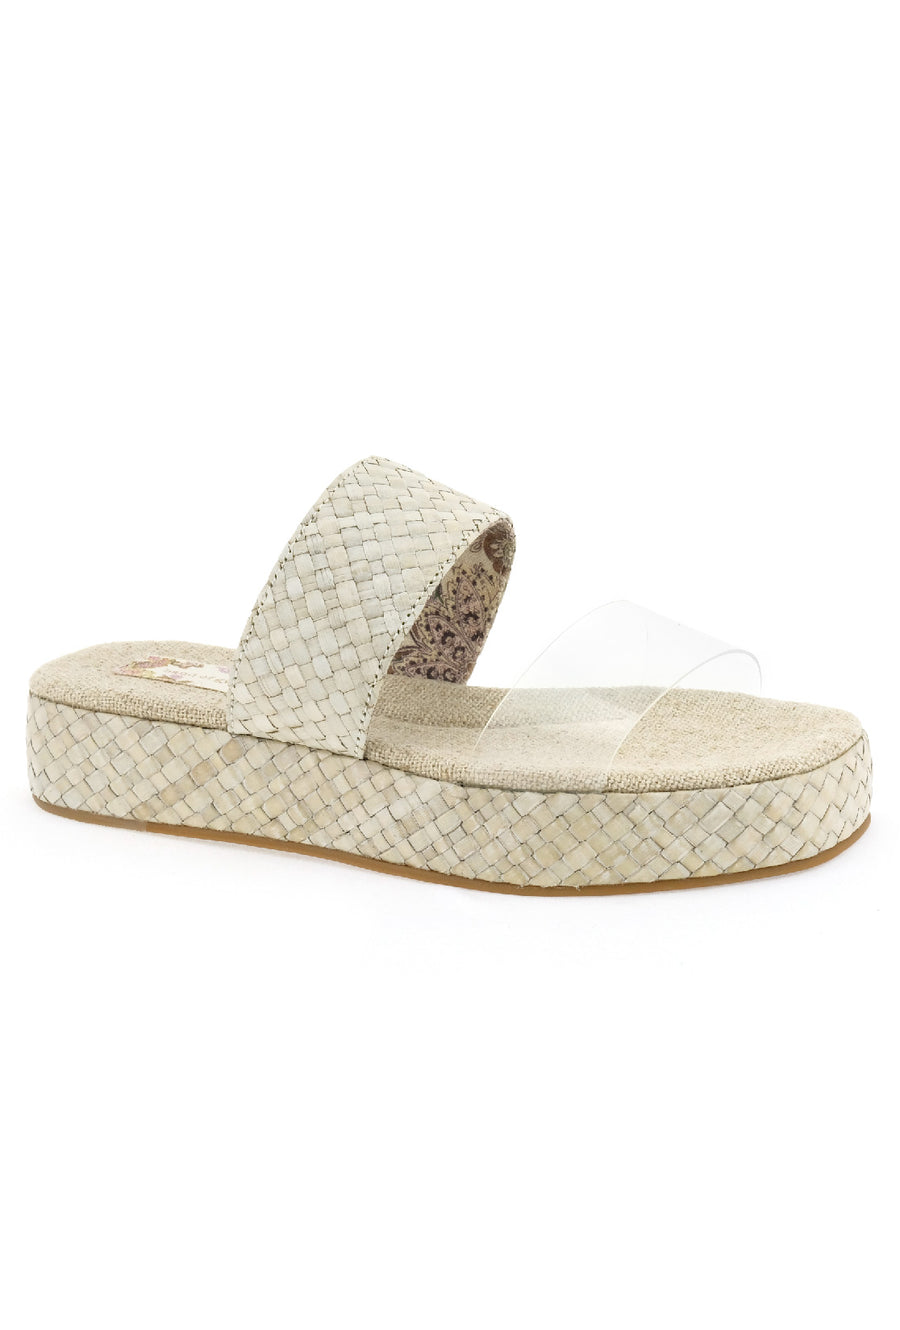 Mirth Vegan Vinyl Rattan Clear Wedge Sandal Master